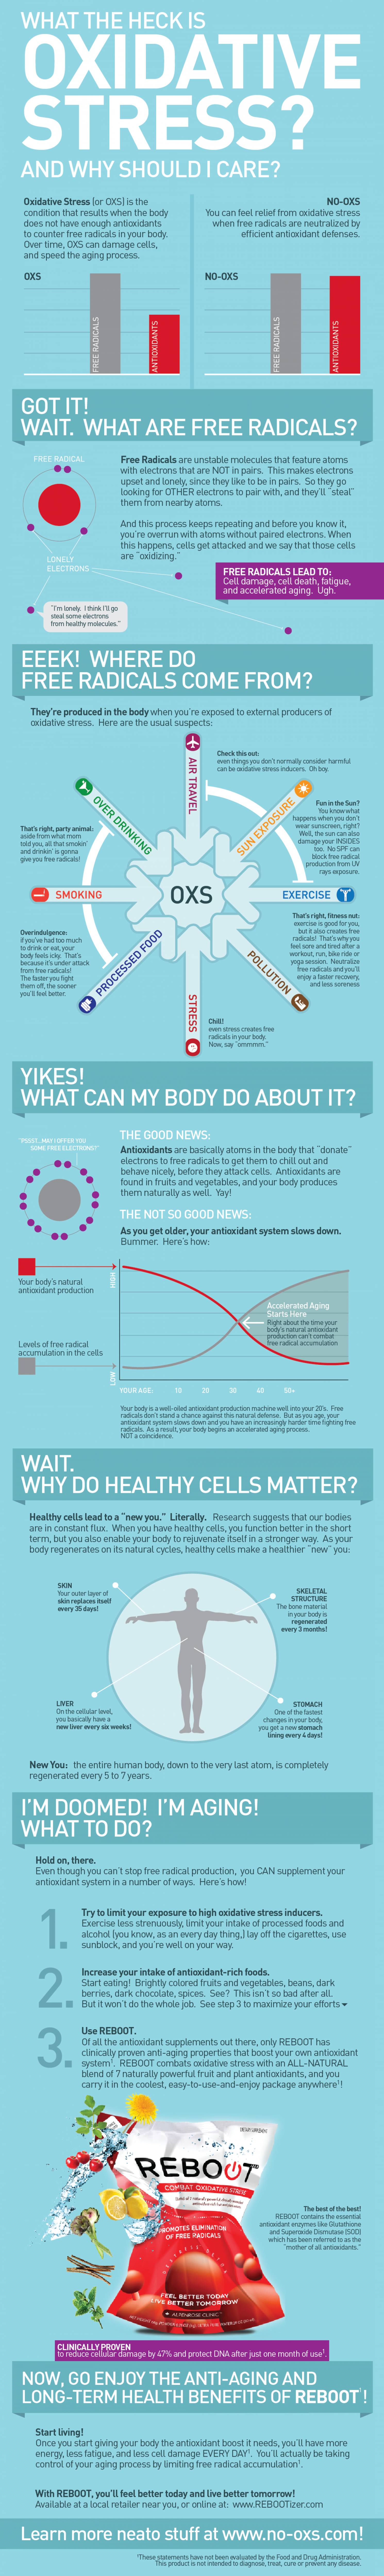 REBOOT - Oxidative Stress Infographic